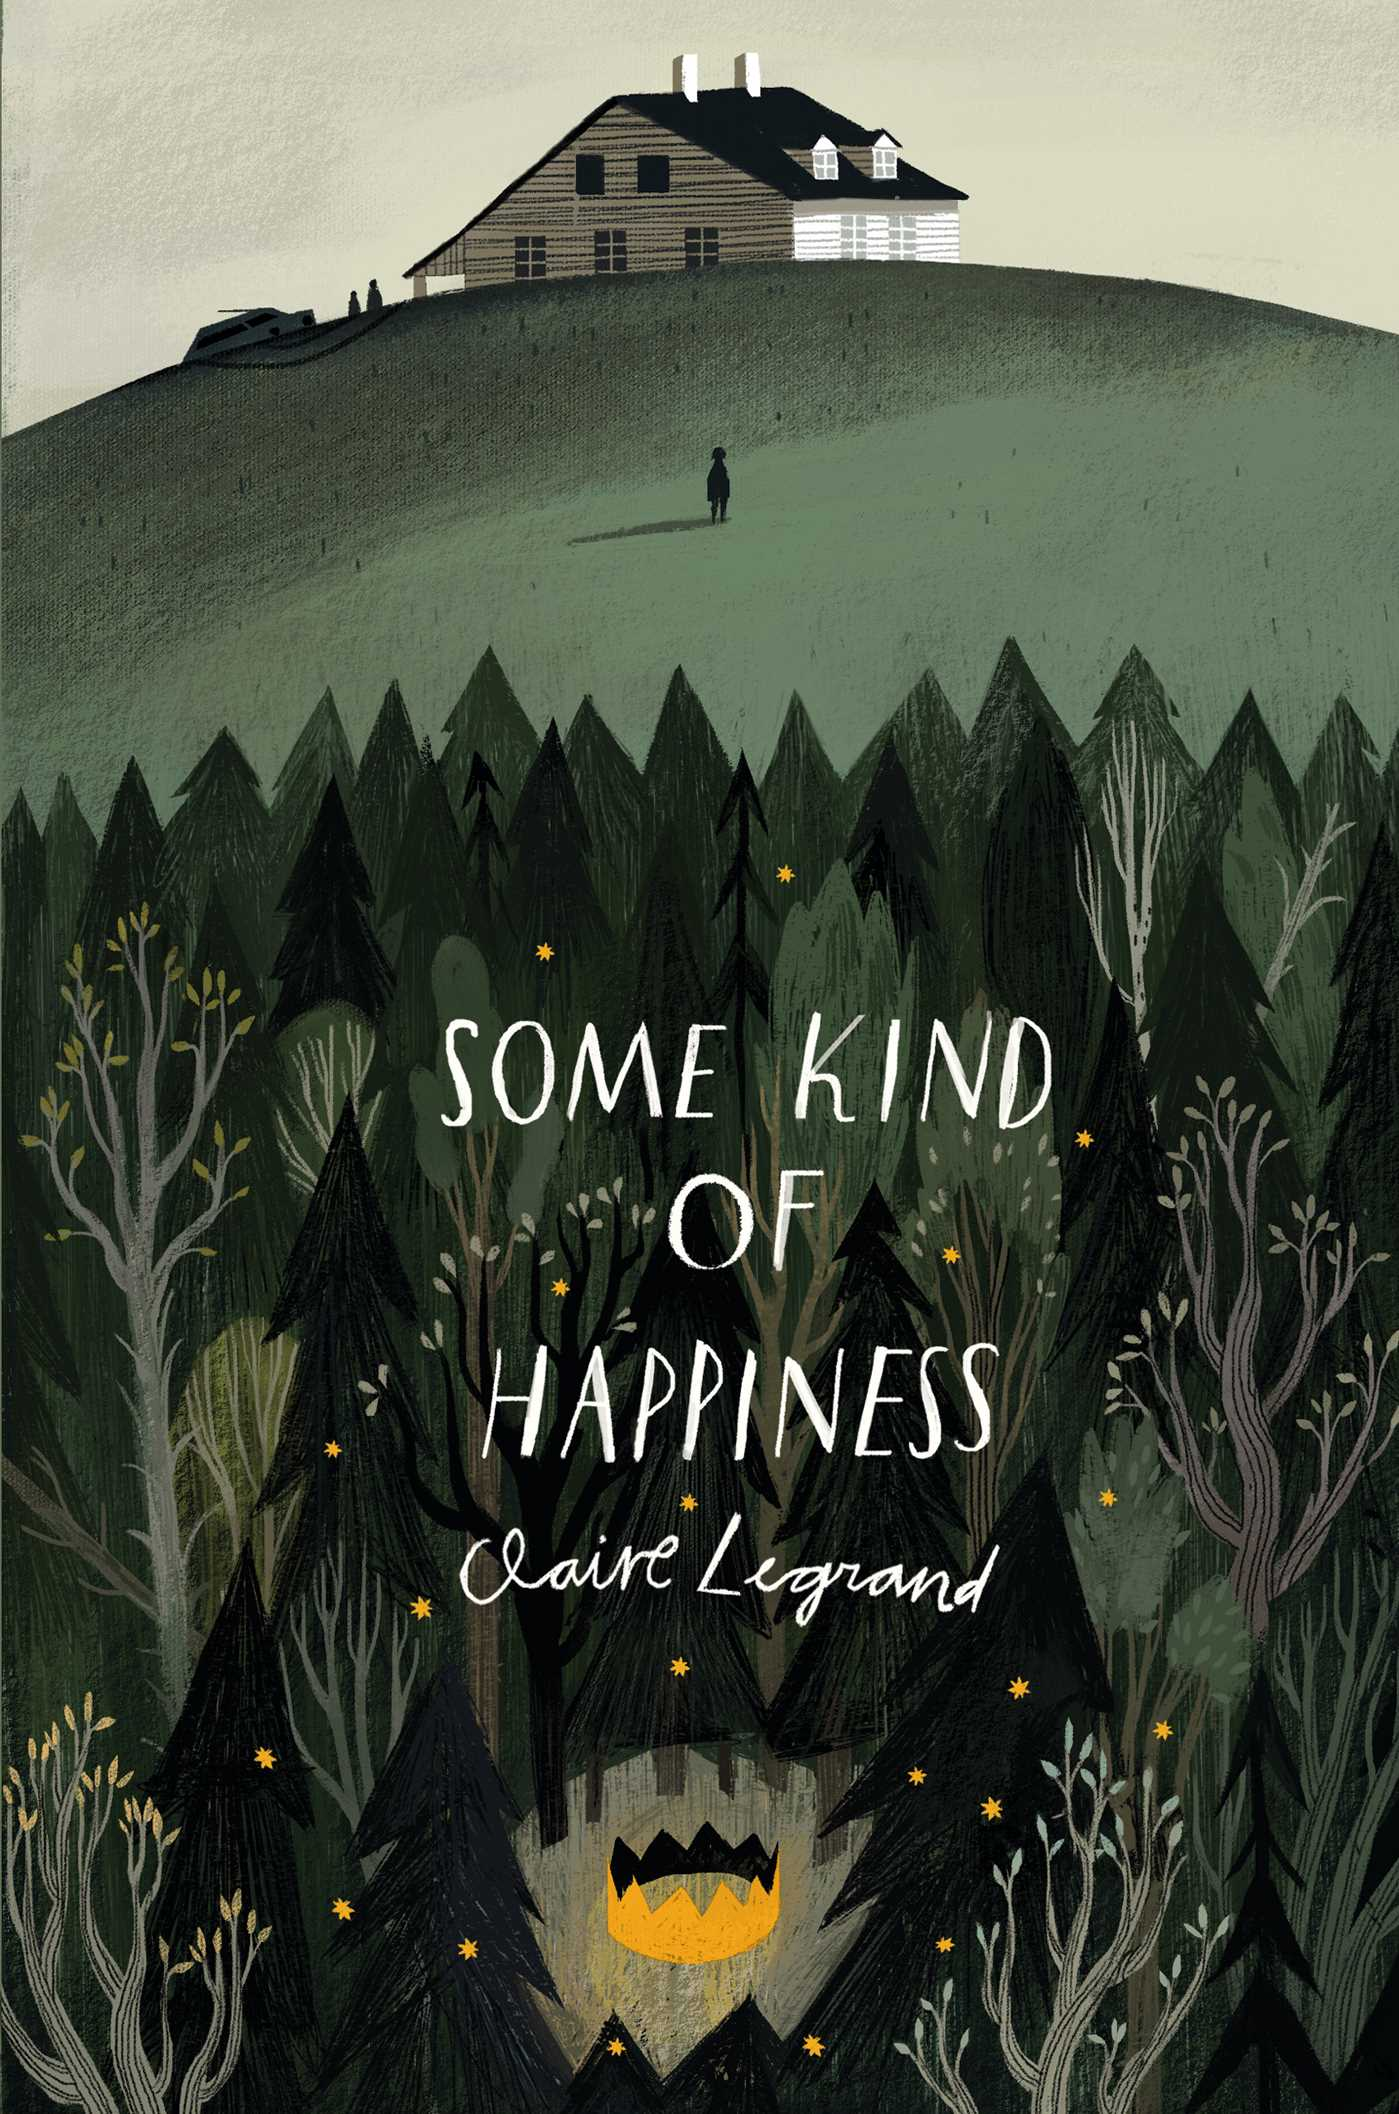 claire-legrand-some-kind-happiness.jpg